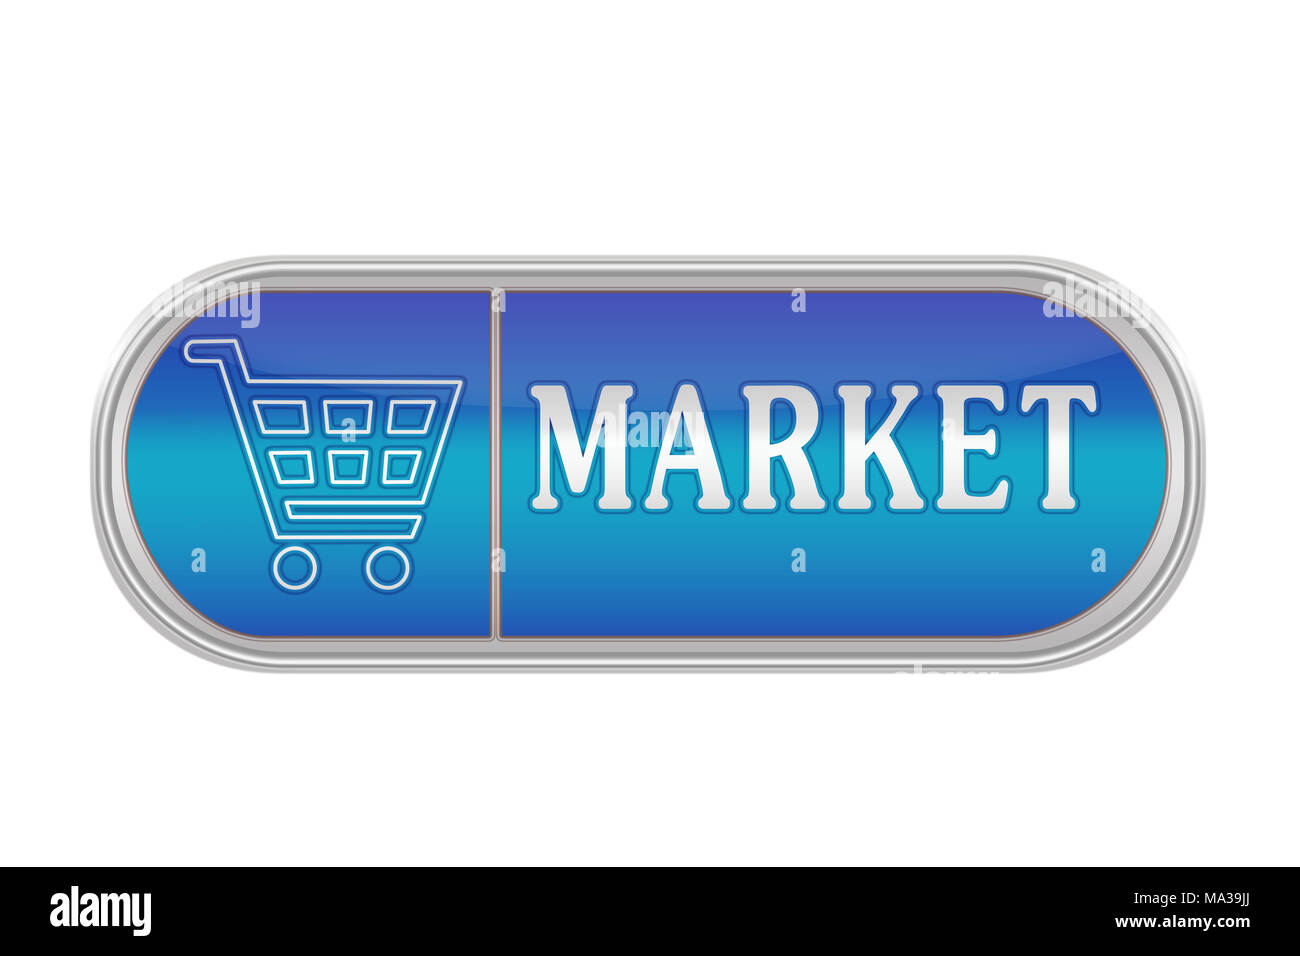 Oblong volume button of blue color with the icon and the inscription 'MARKET', white background - Stock Image